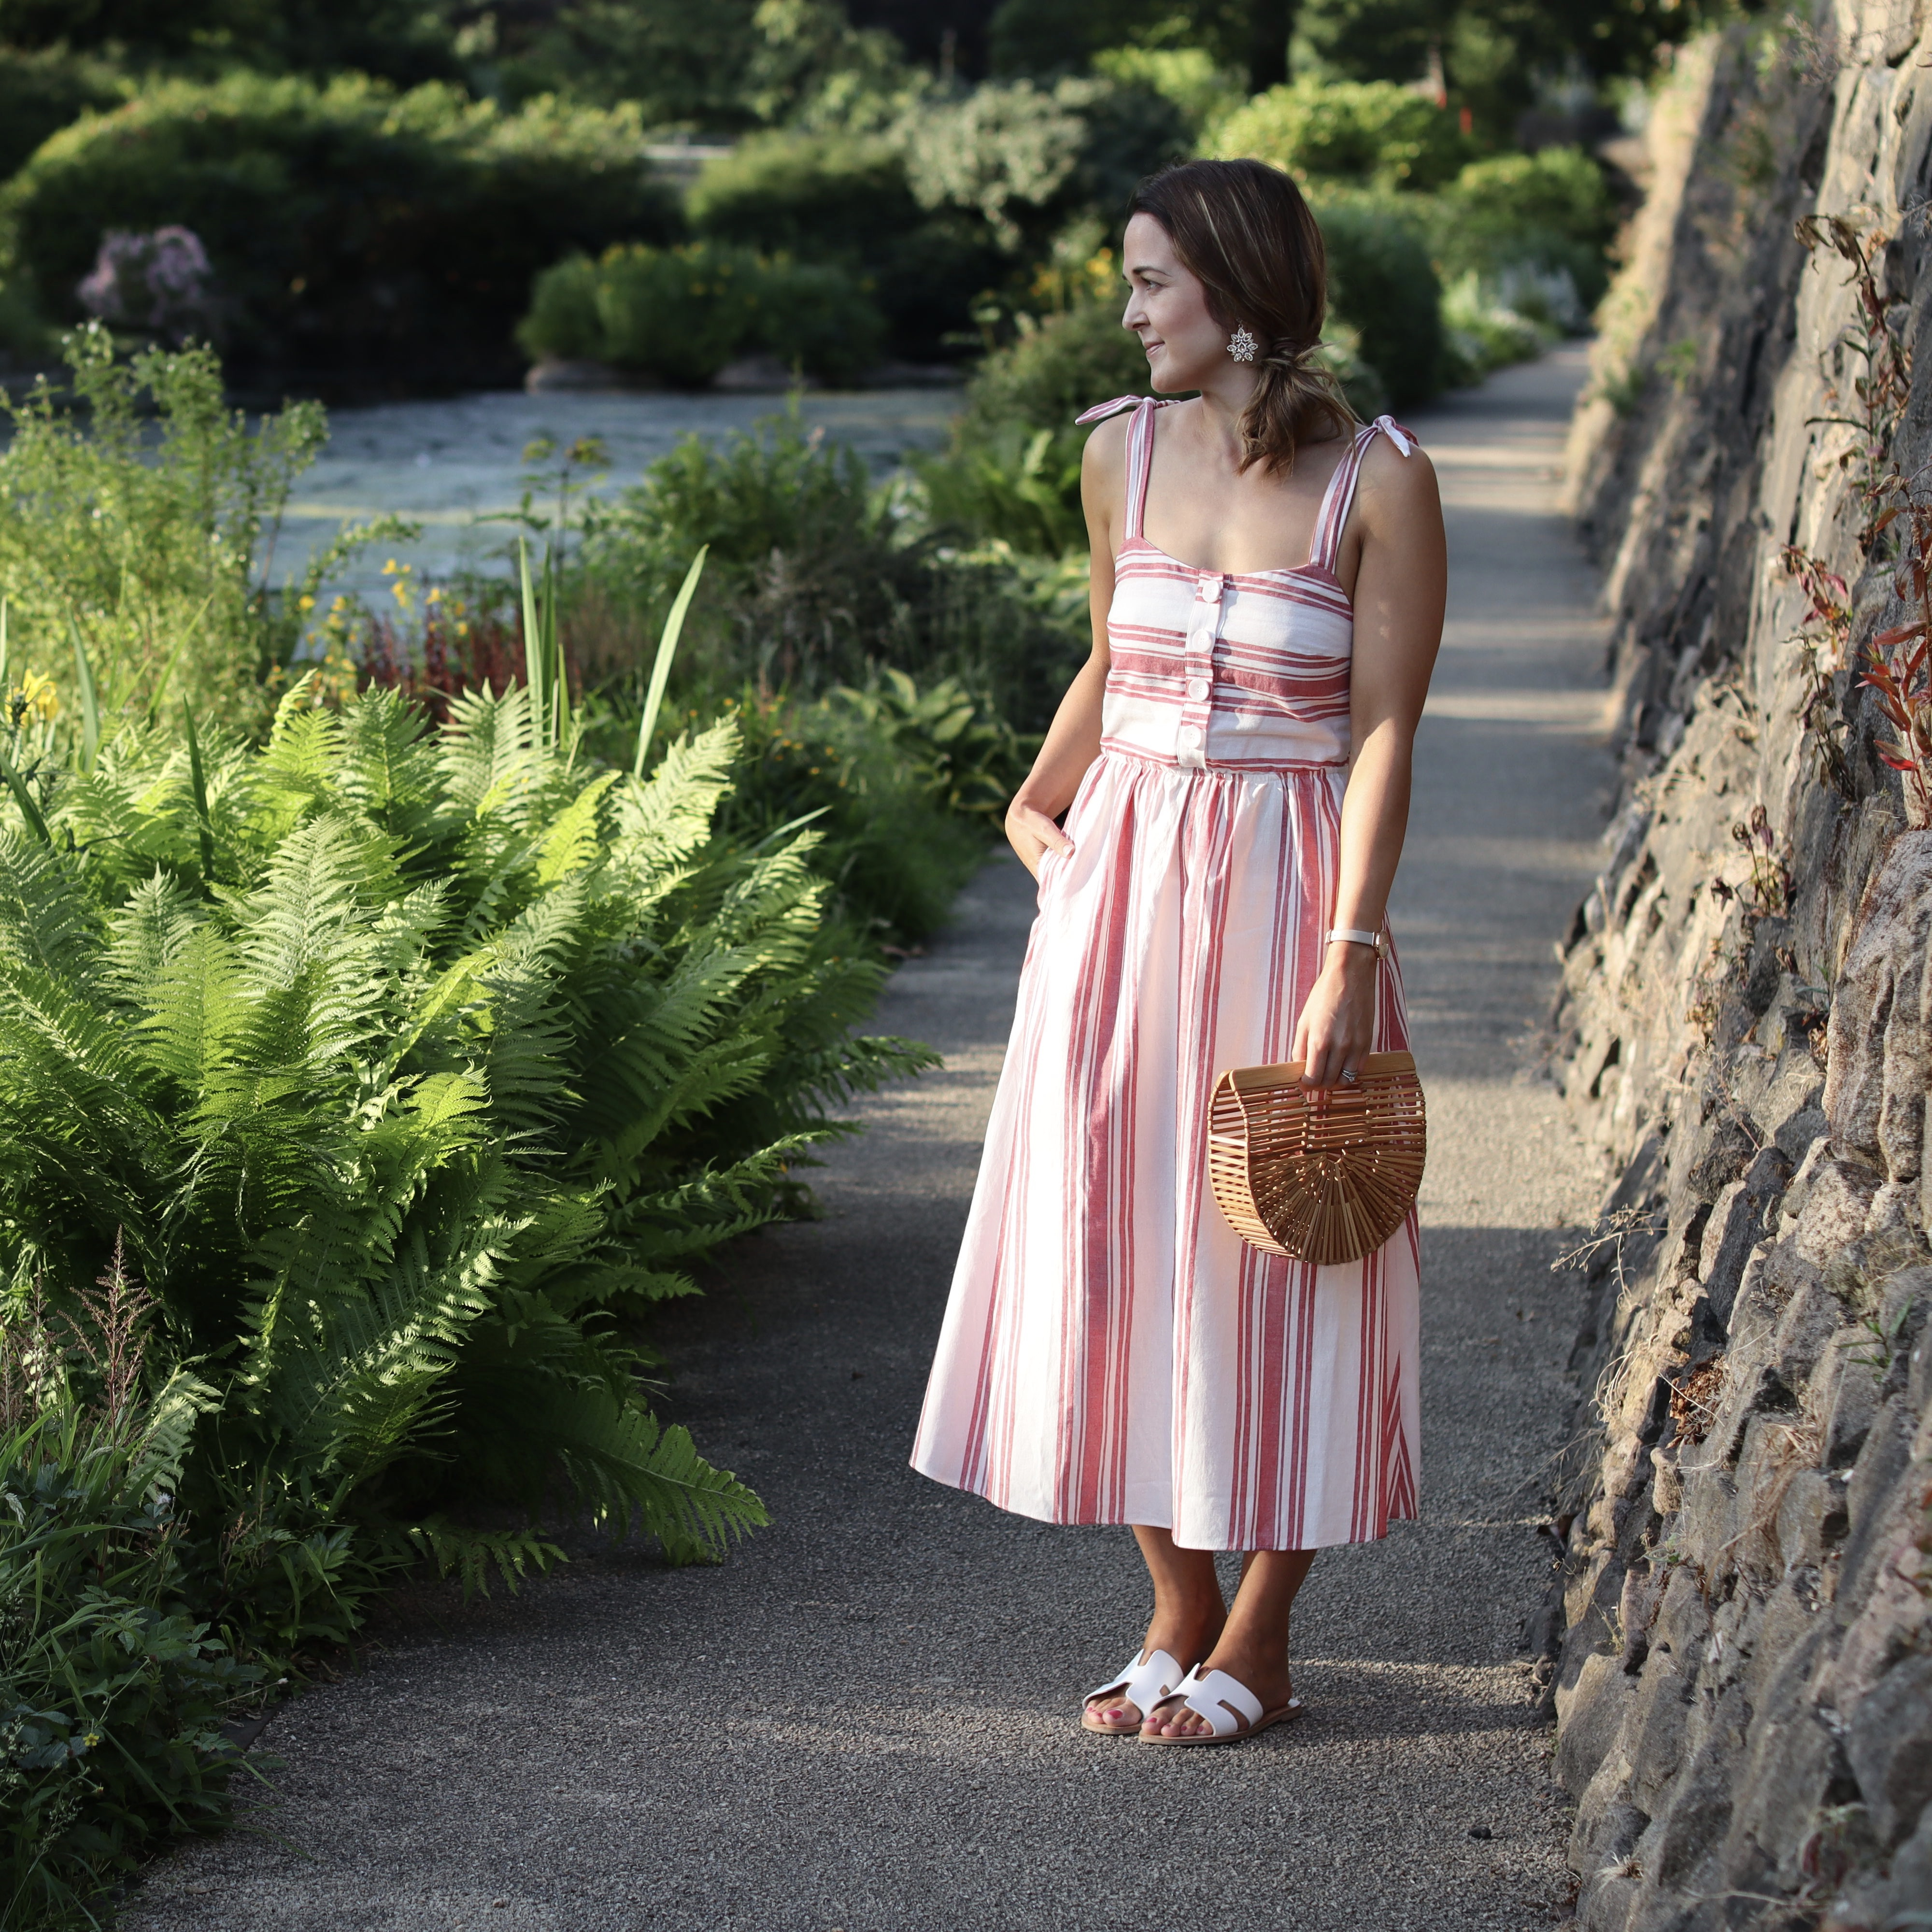 Rebecca Denise wearing Red and White Stripe Strappy Dress by Zara